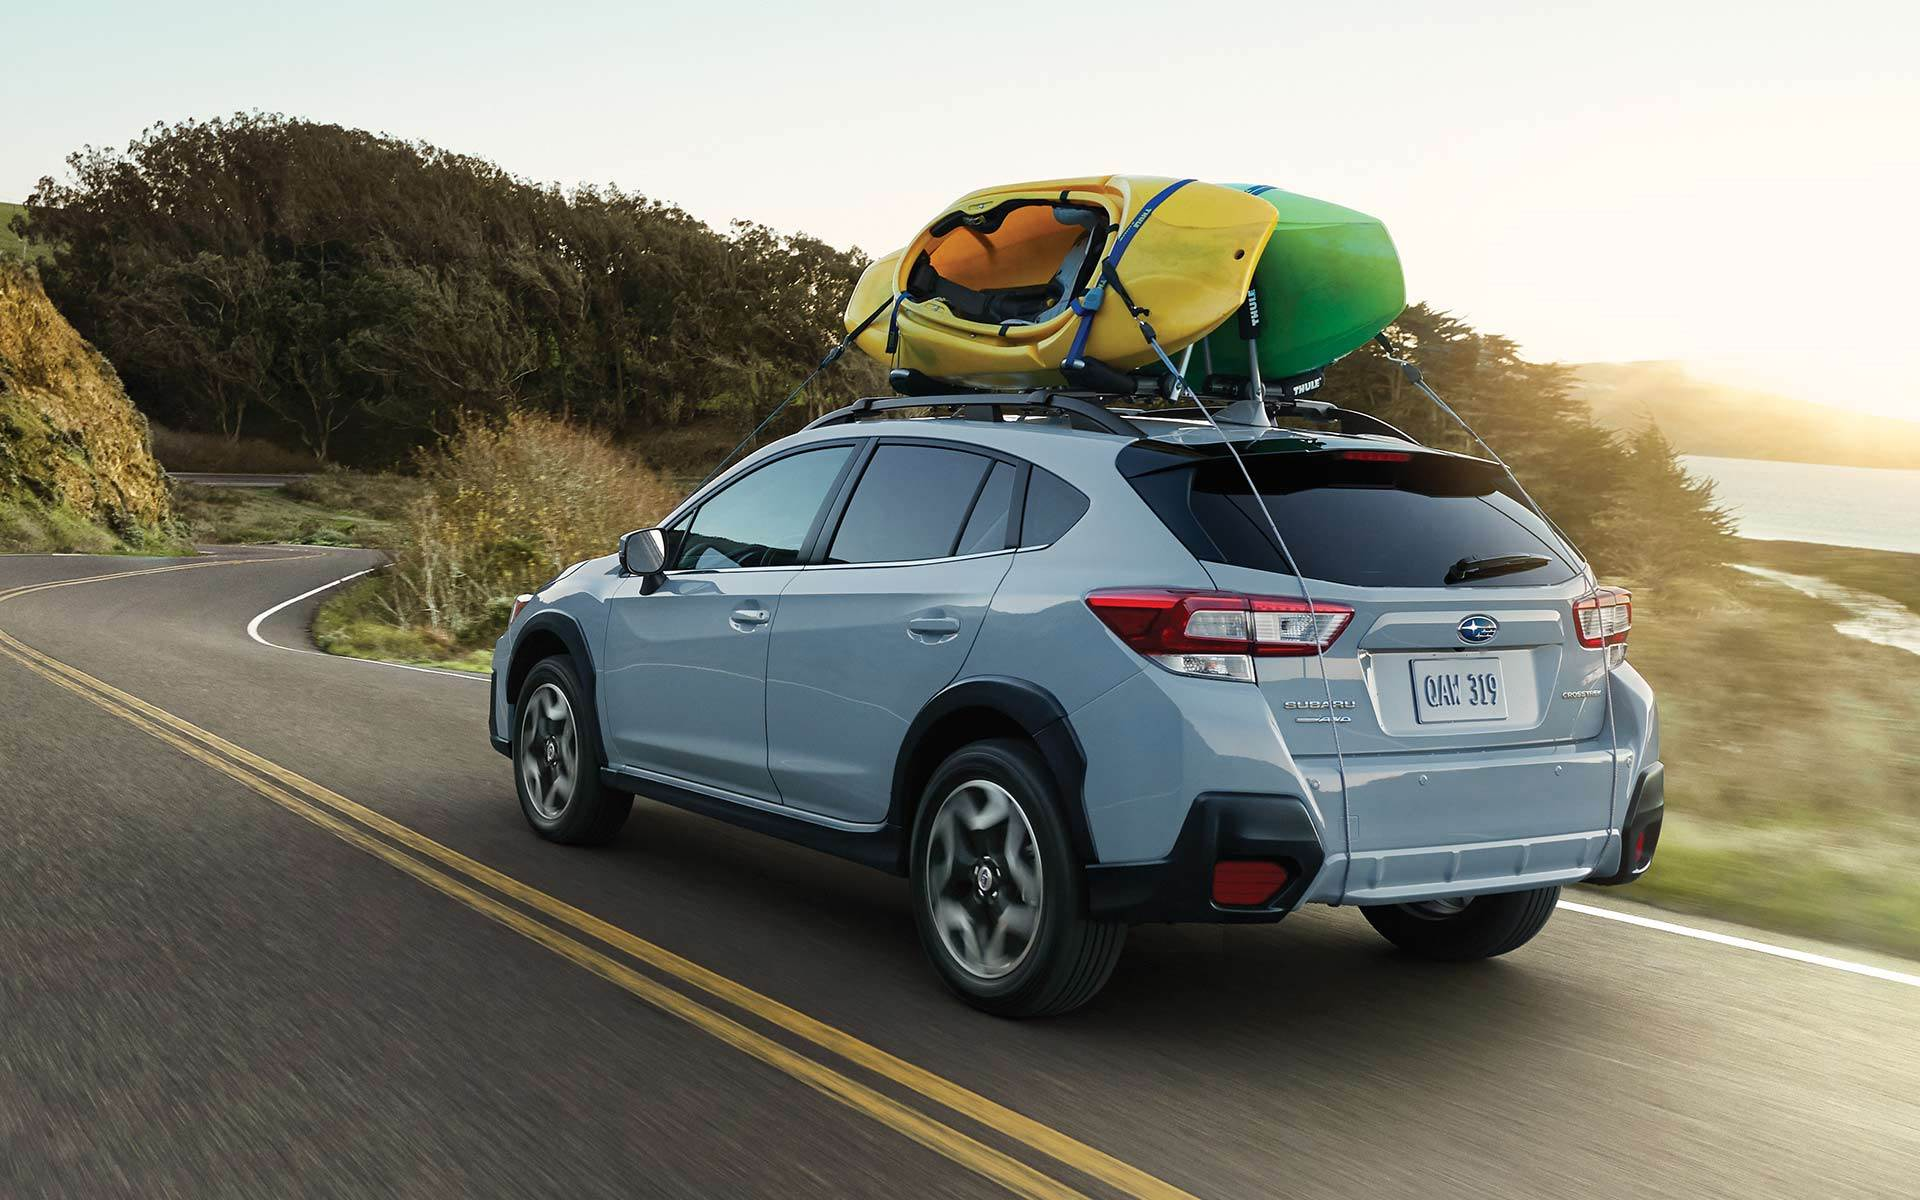 2018 Subaru Crosstrek for Sale near Folsom, CA